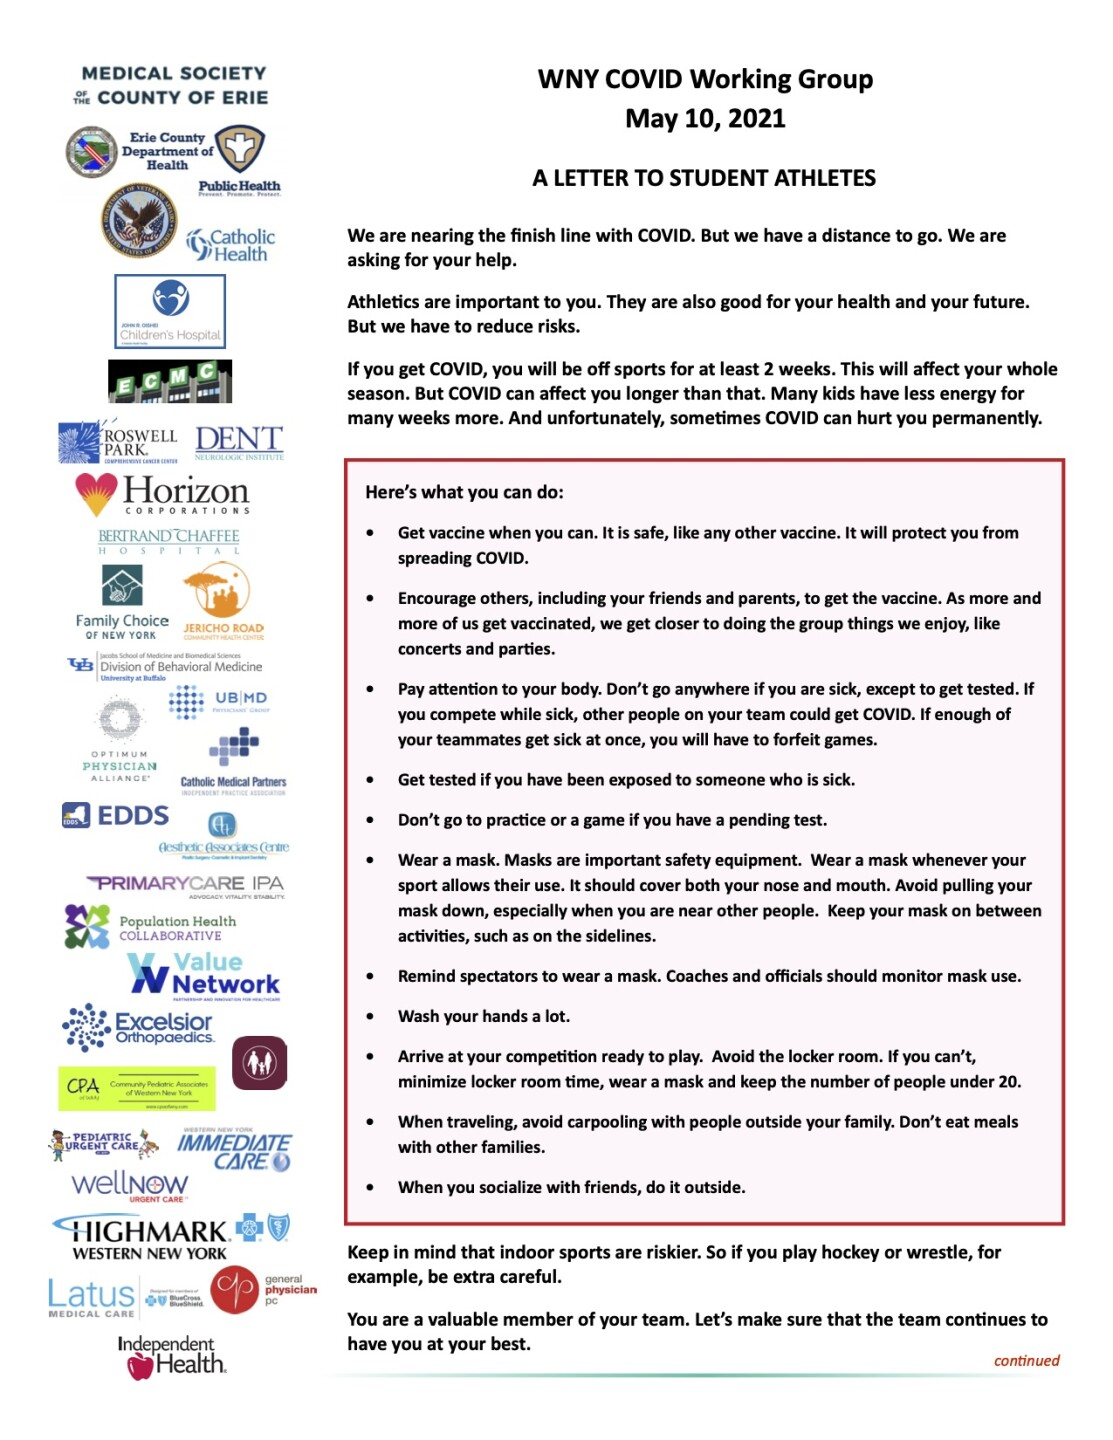 WNY COVID Working Group - A Letter to Student Athletes - 05-10-2021.jpg